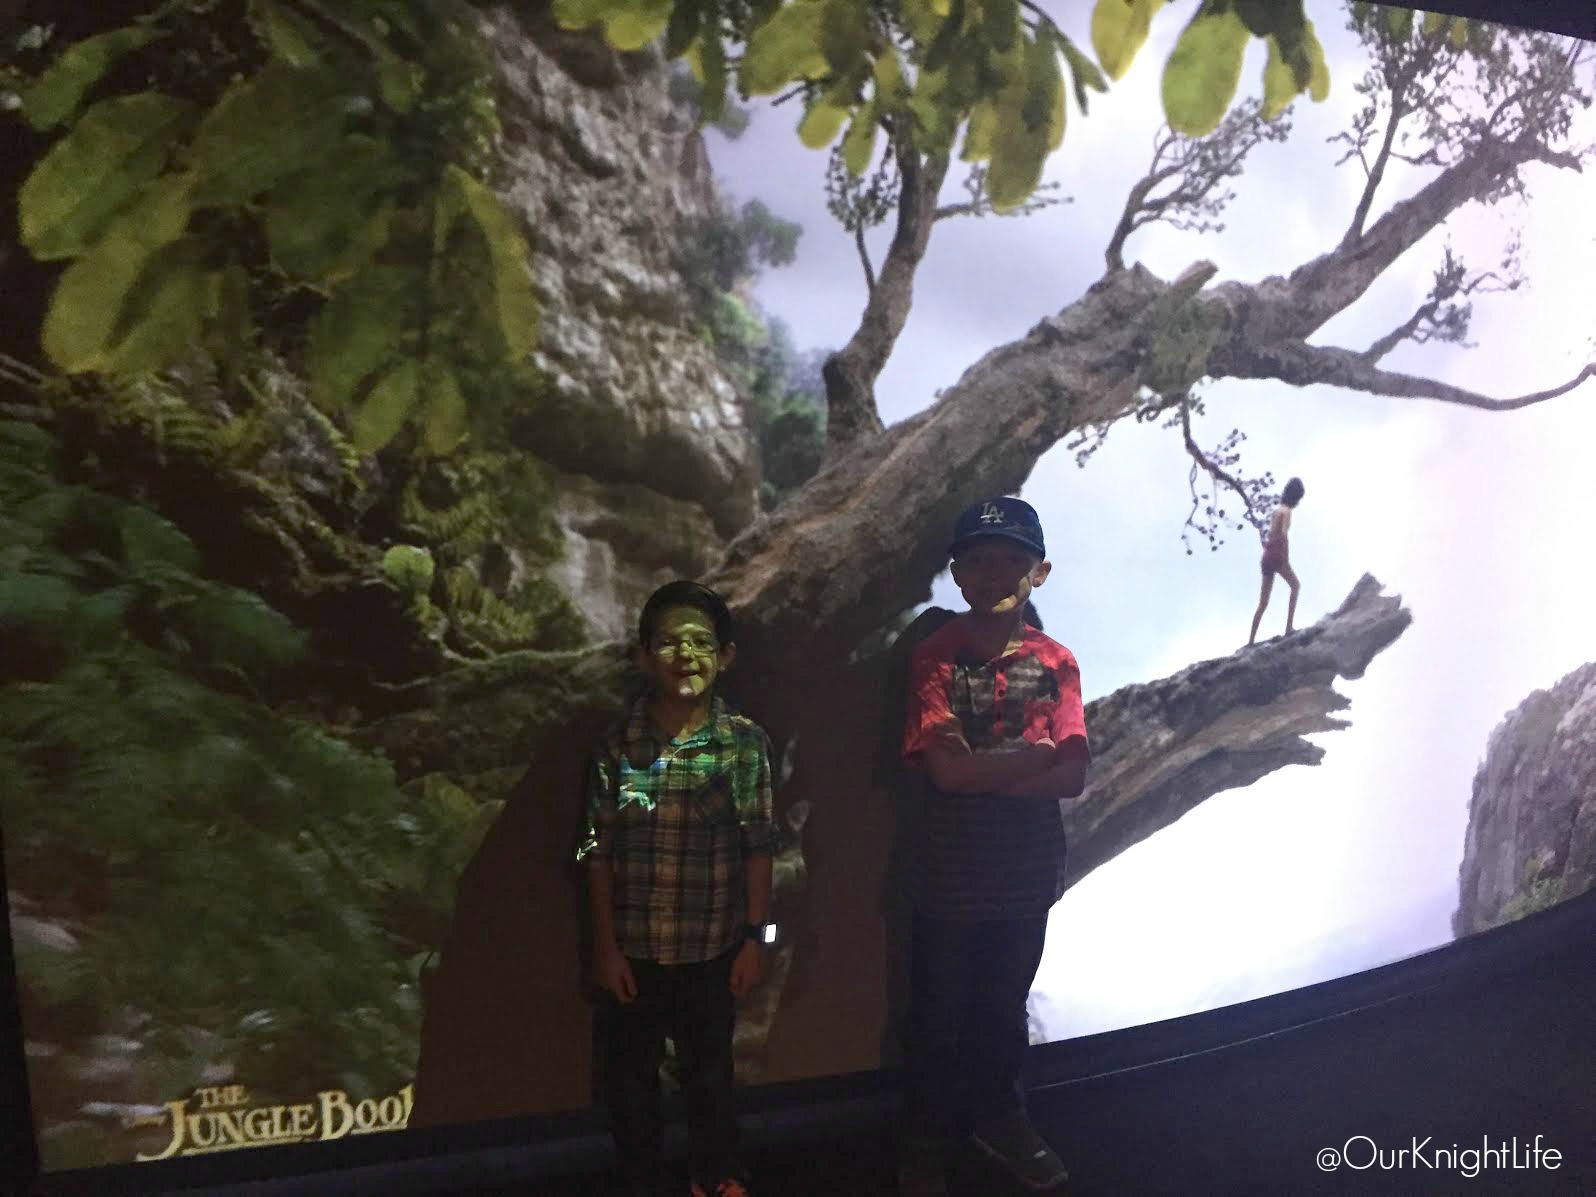 The Jungle Book AMC Dolby Cinema